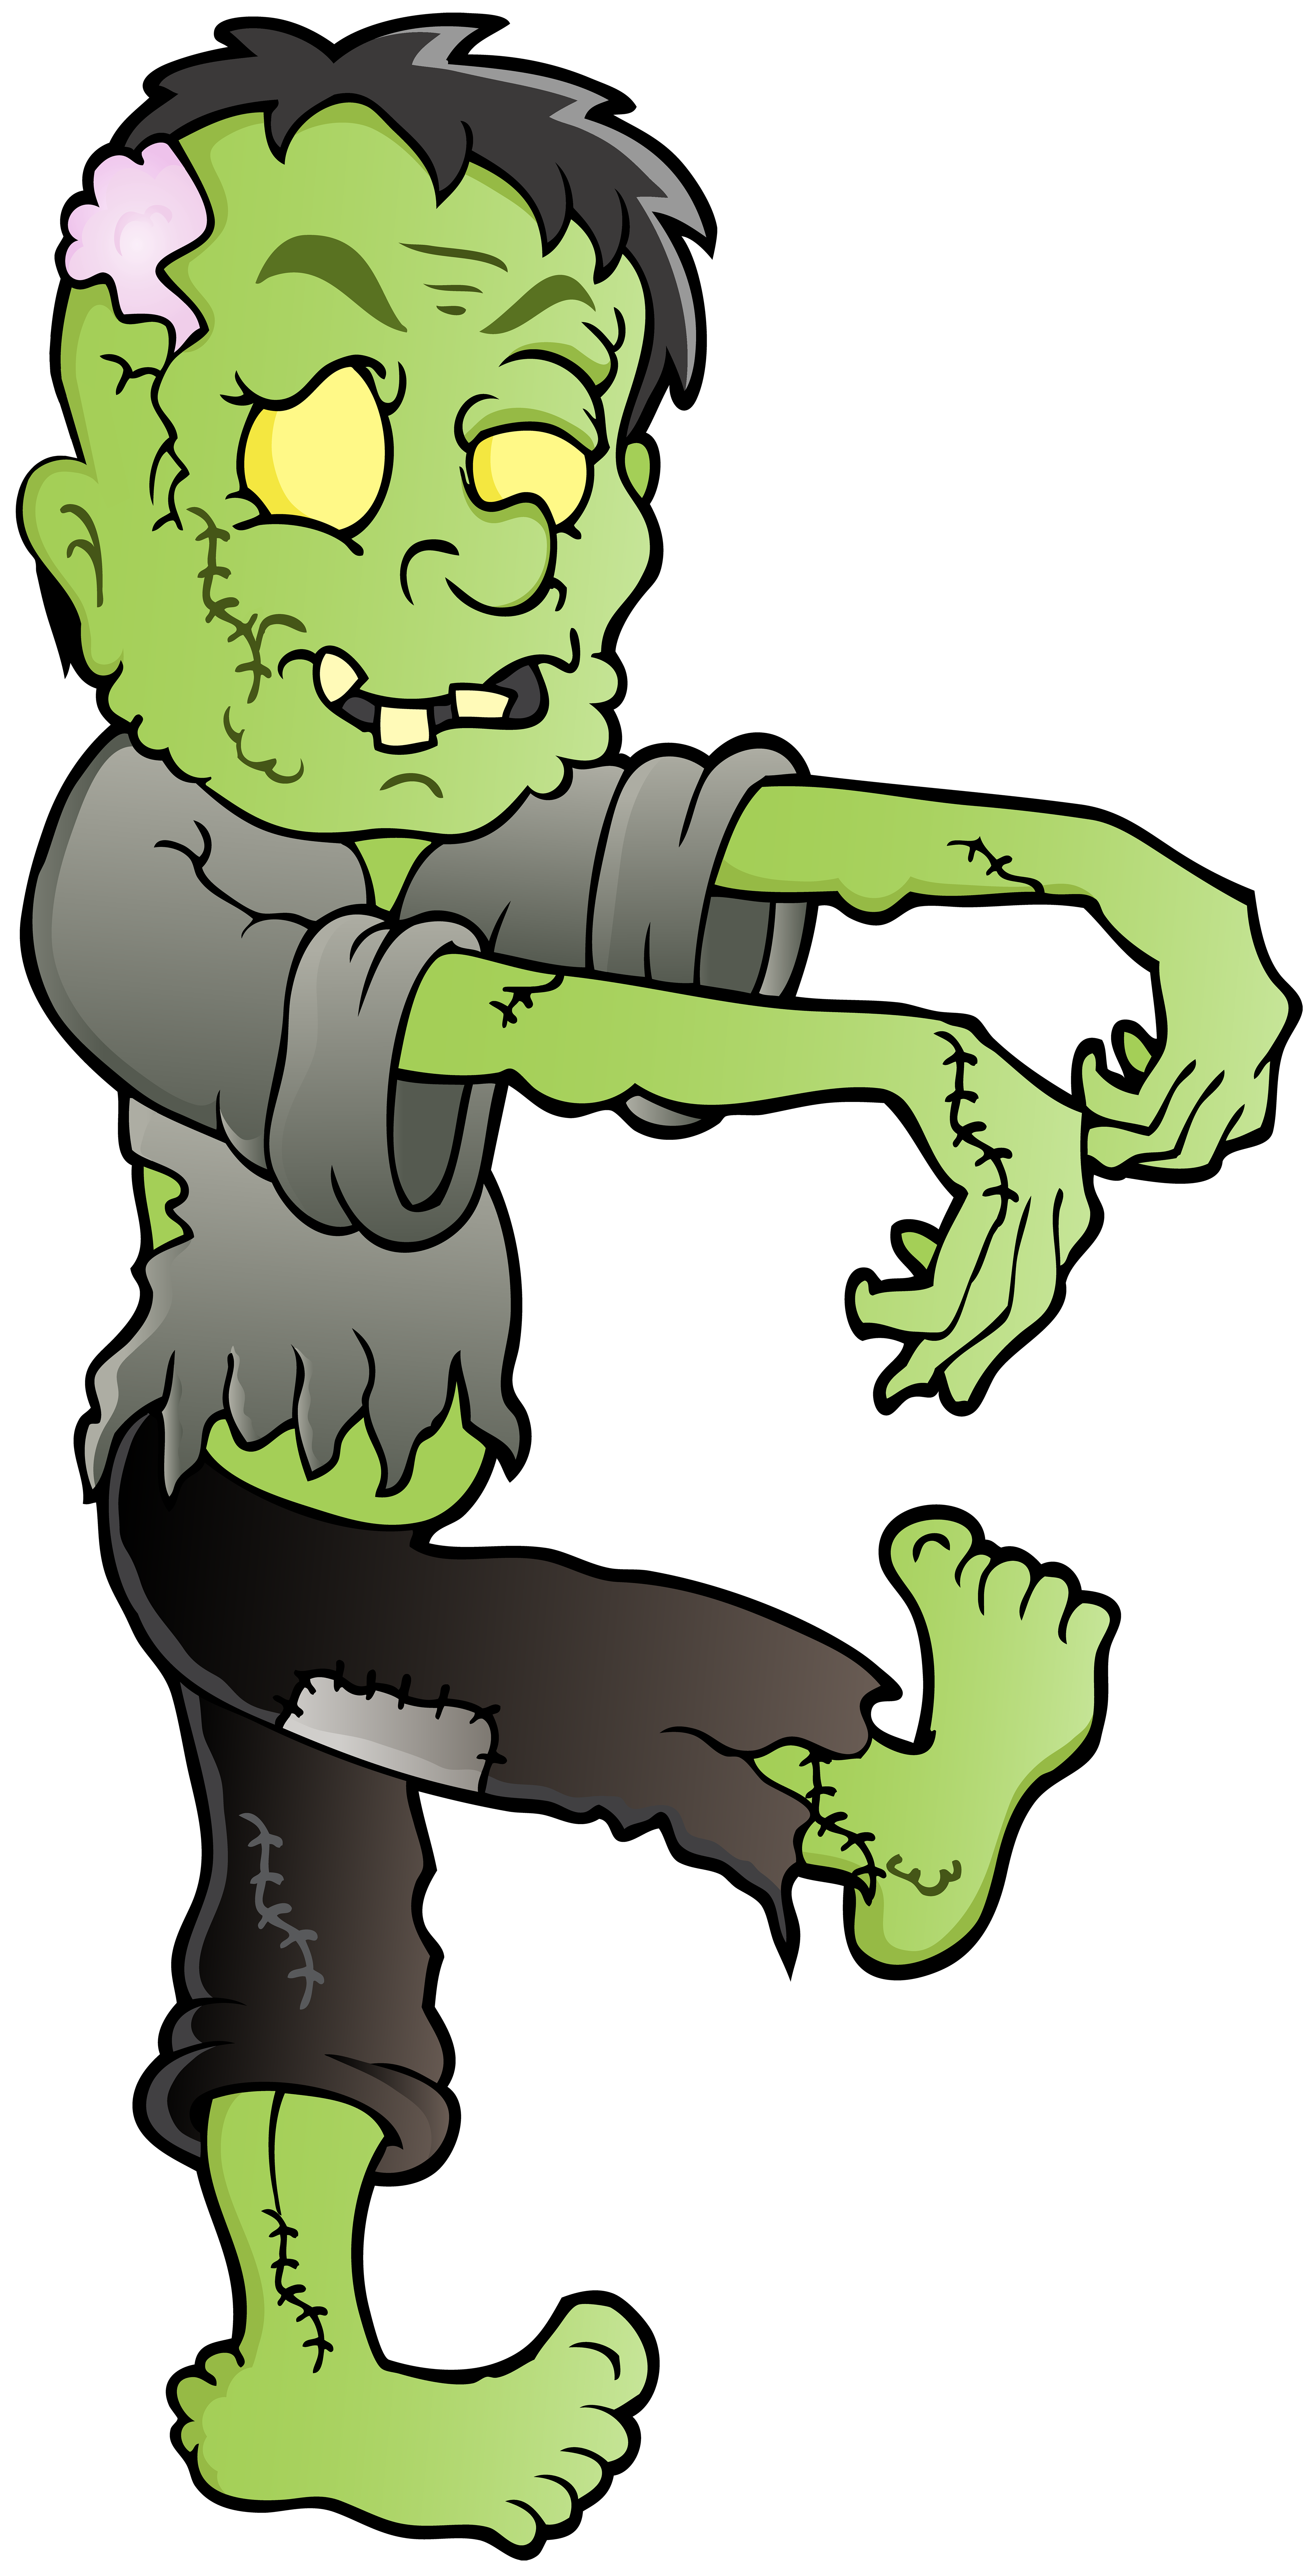 Halloween zombie clipart jpg stock Zombie PNG Clip Art Image | Gallery Yopriceville - High-Quality ... jpg stock